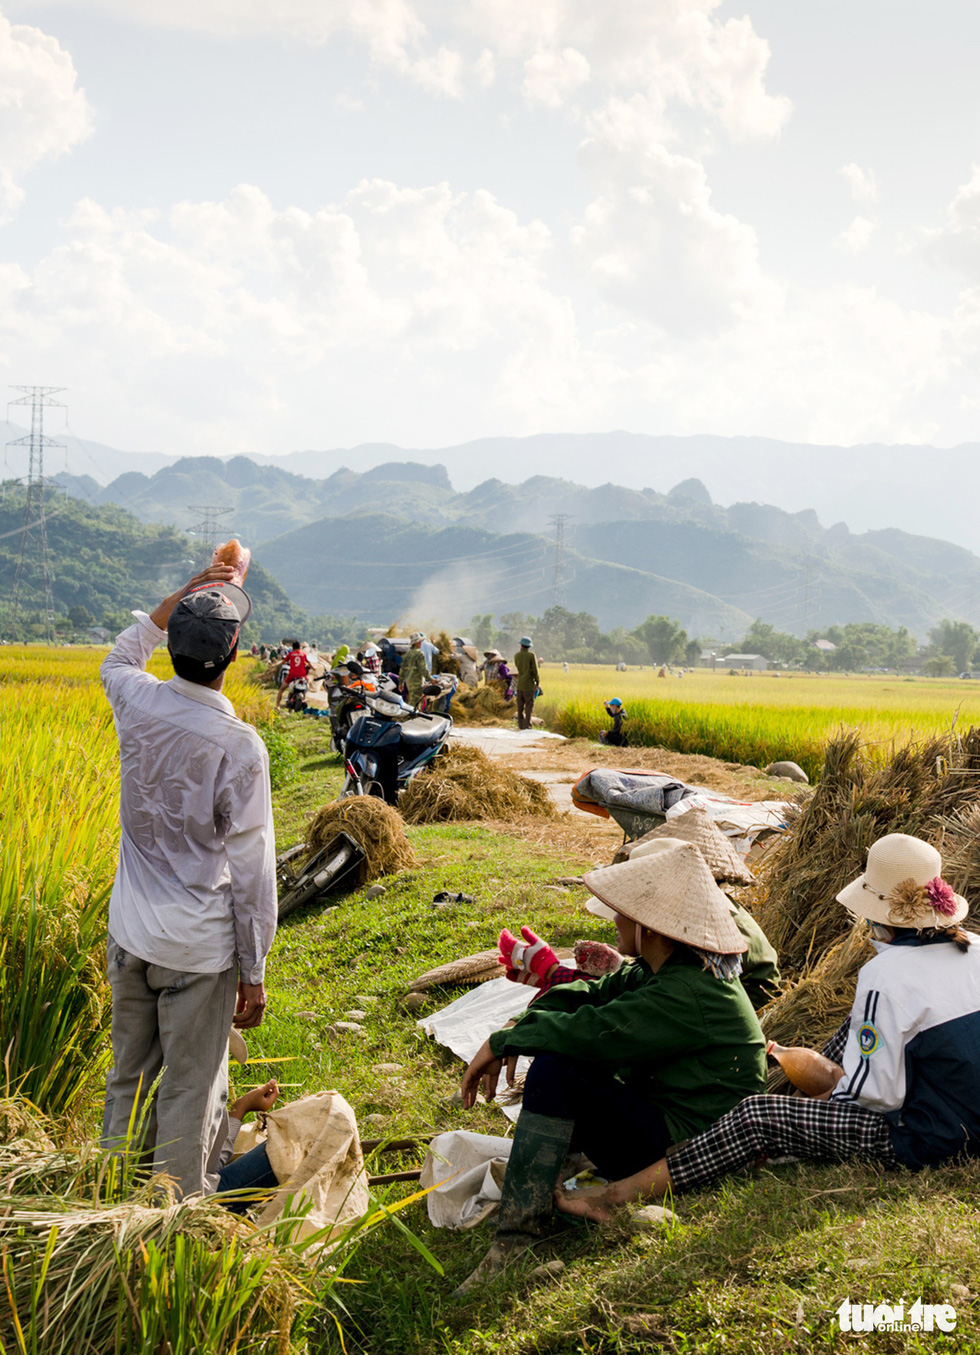 Farmers gather at Muong Tac paddy field during harvesting season. It is also an opportunity for them to gather and talk to each other while they work in the fields. Photo: Nguyen Huong / Tuoi Tre